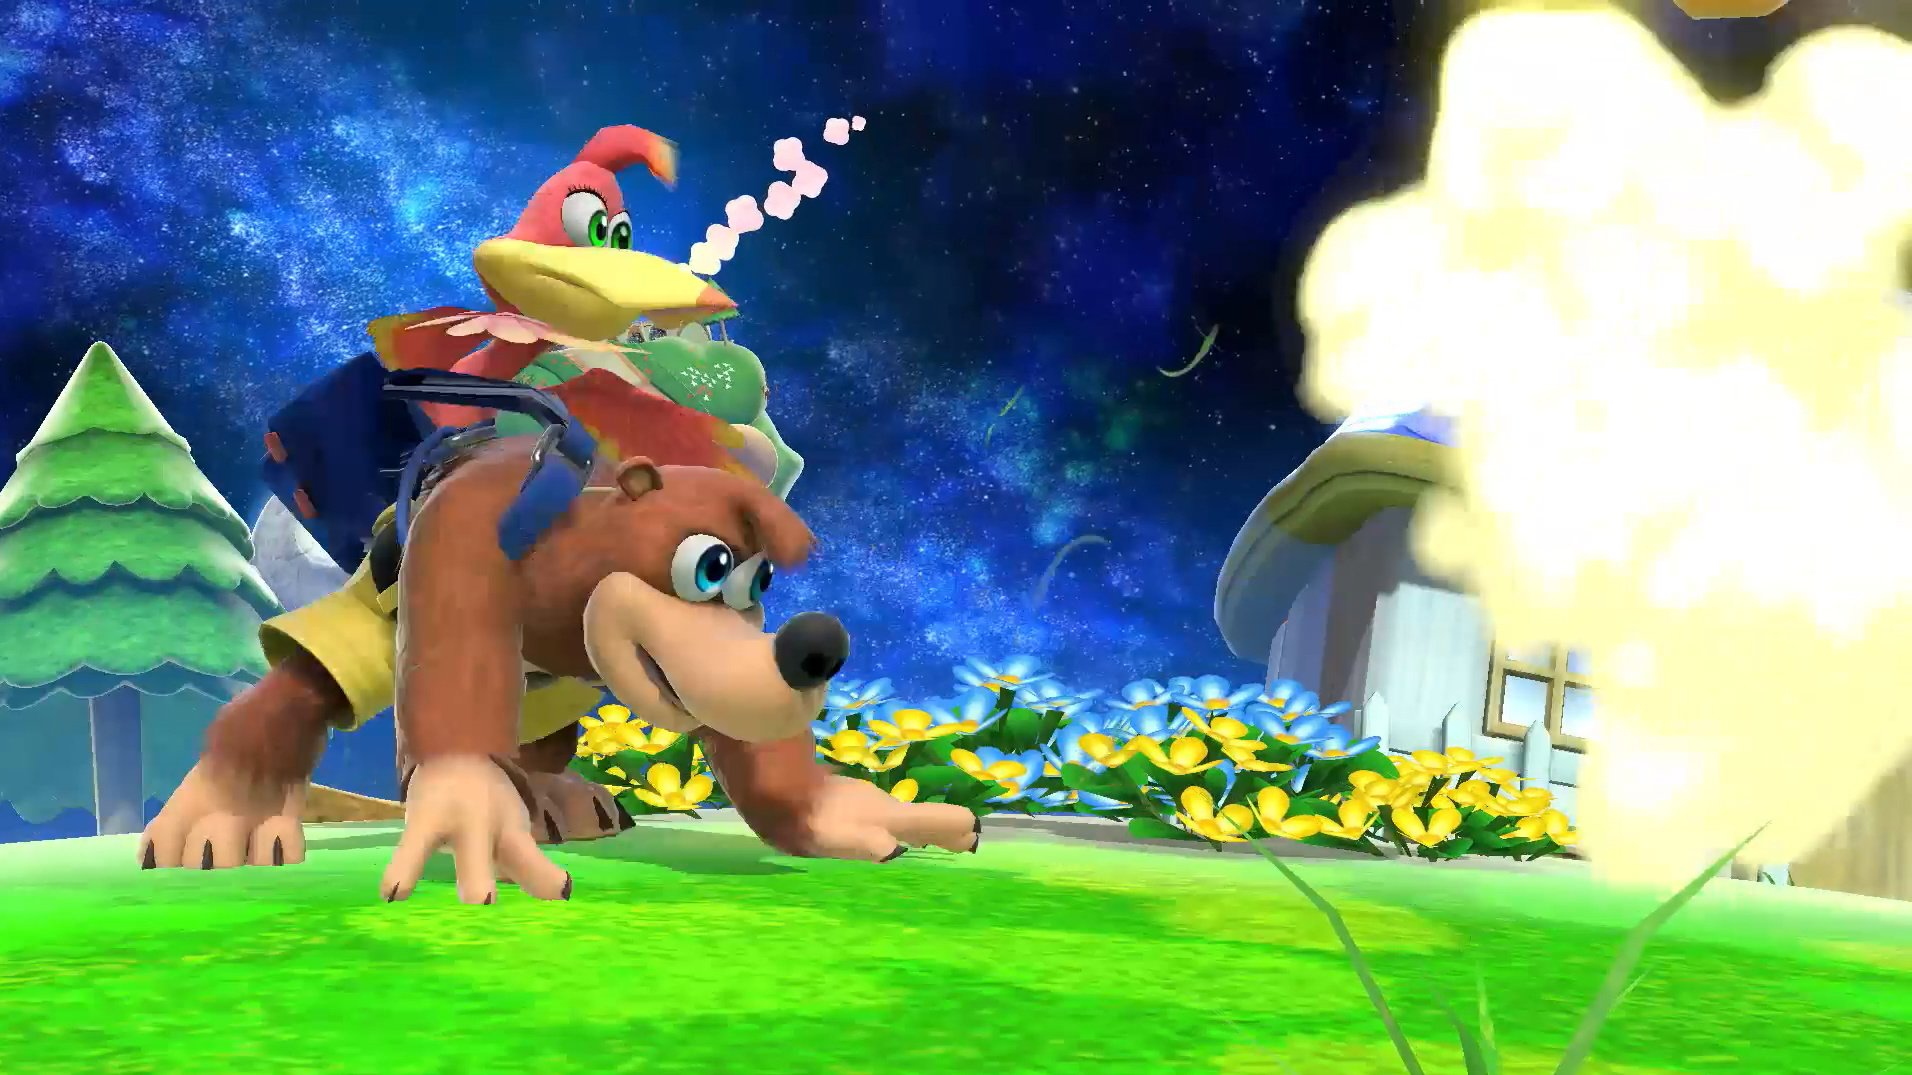 Banjo-Kazooie Confirmed For Super Smash Bros  Ultimate This